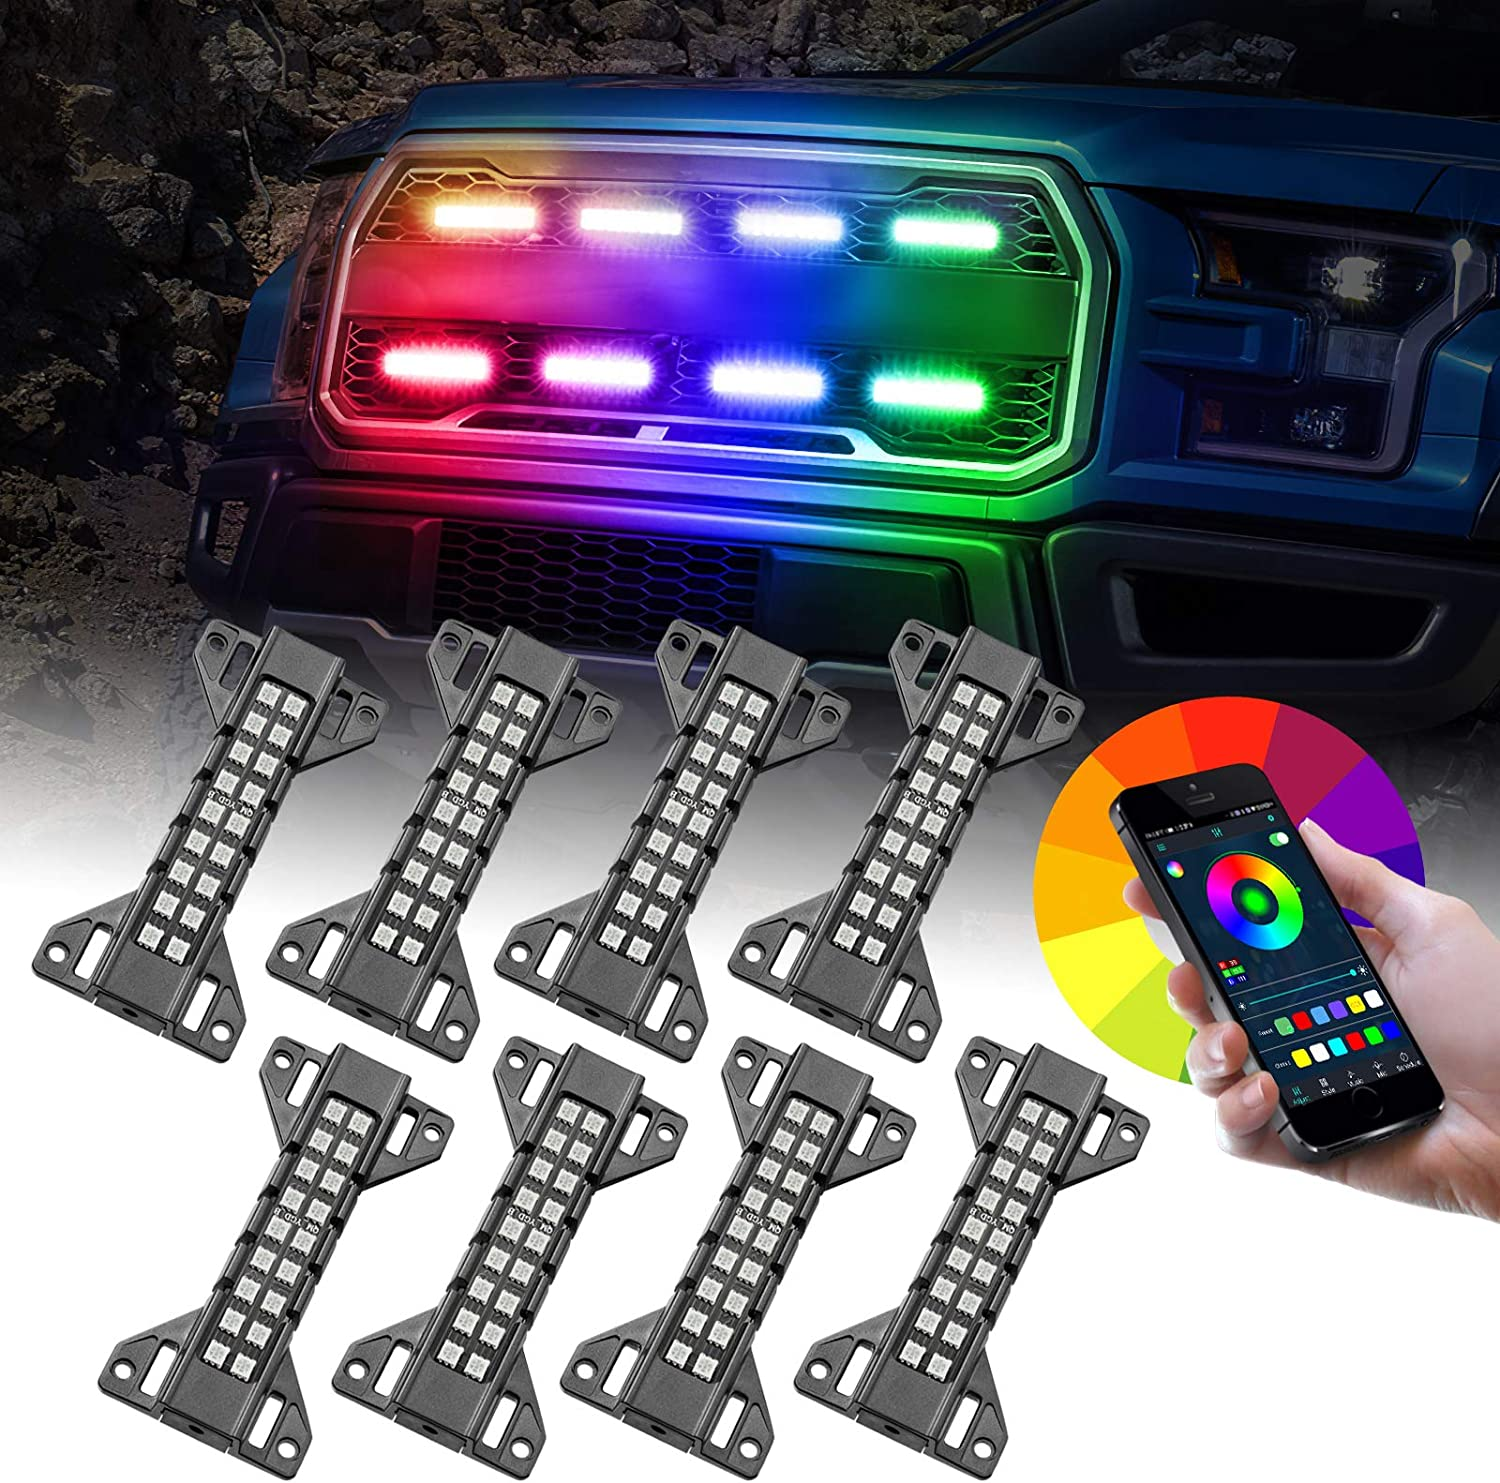 RGB LED San Francisco Mall Grille Lights OFFROADTOWN 8 for Lighting G Outlet SALE Kit Pack